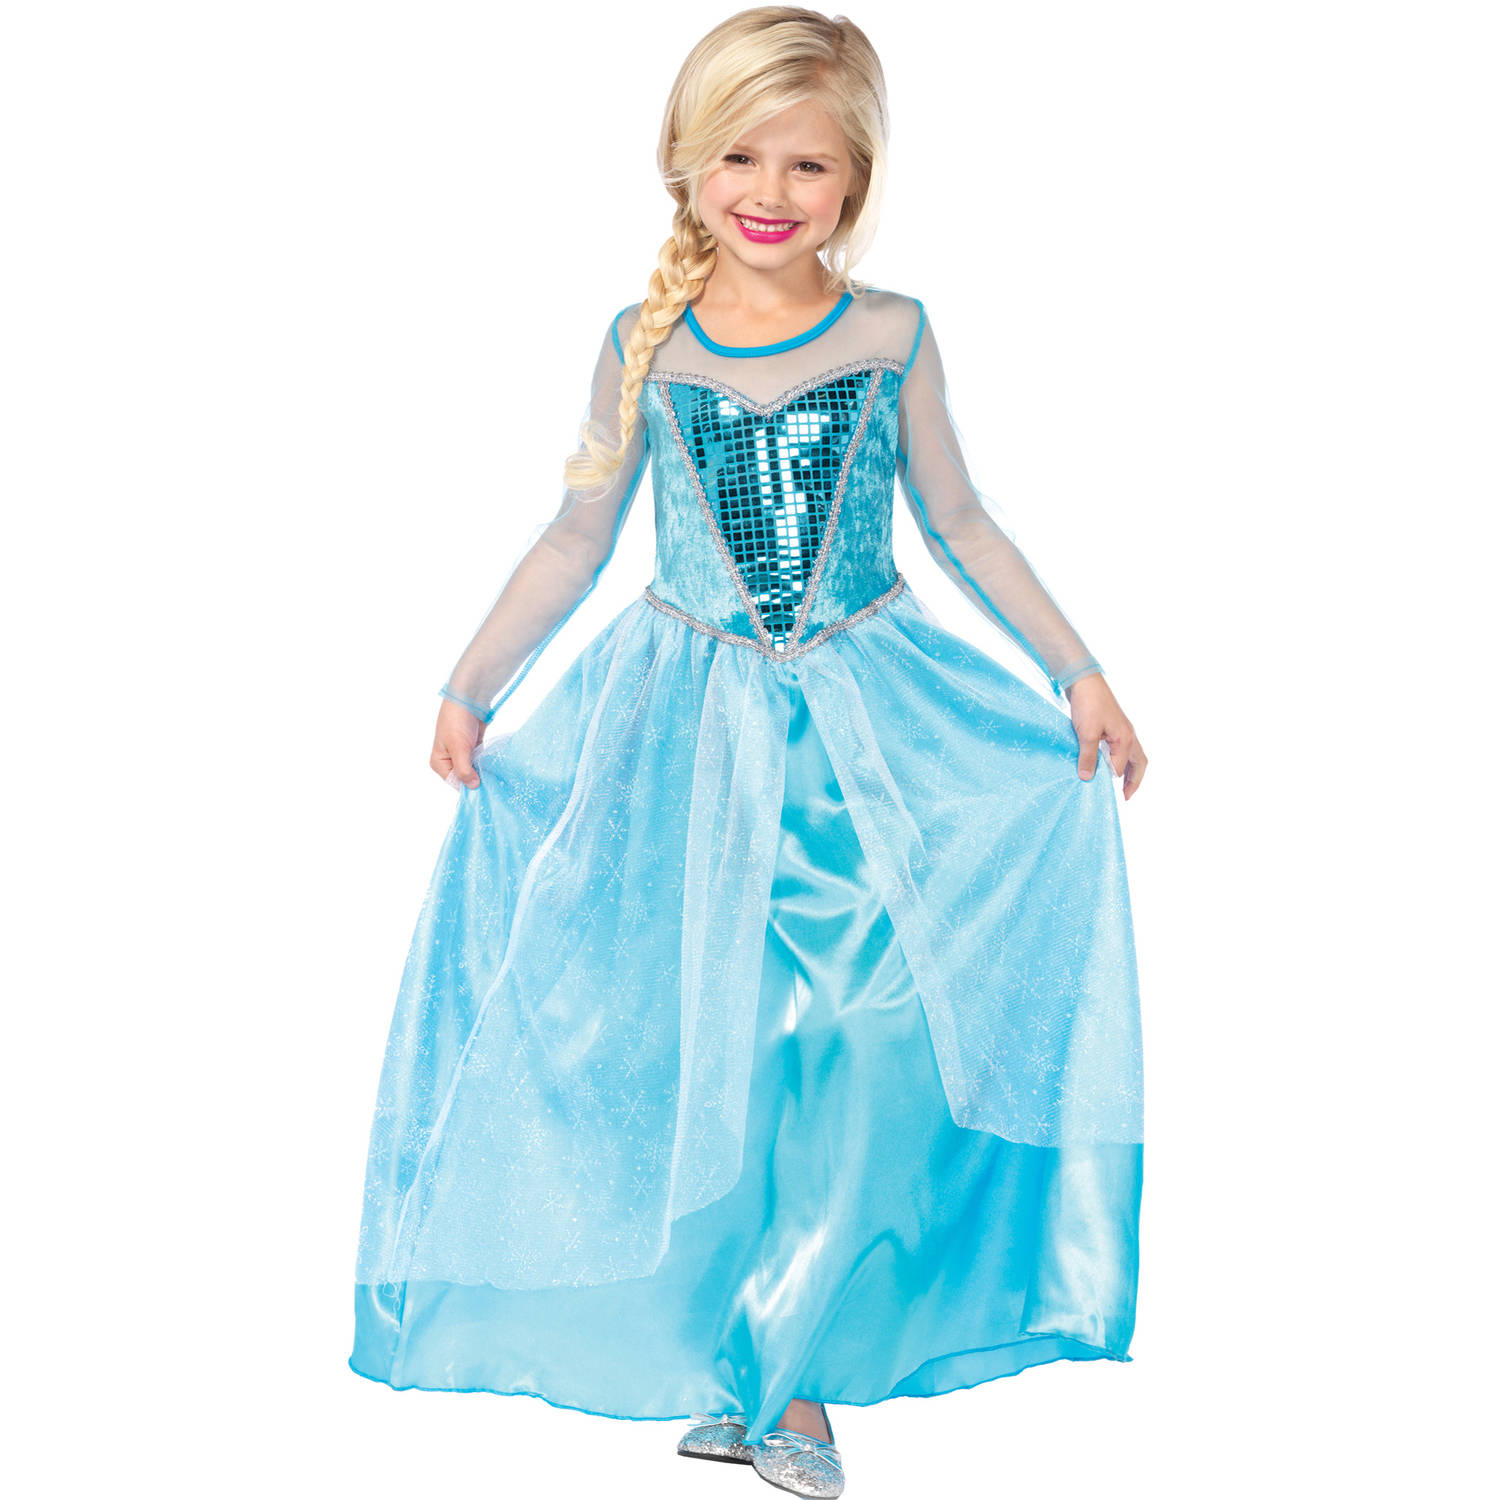 Girls' Fantasy Snow Queen Long Dress w/ Glitter Skirt